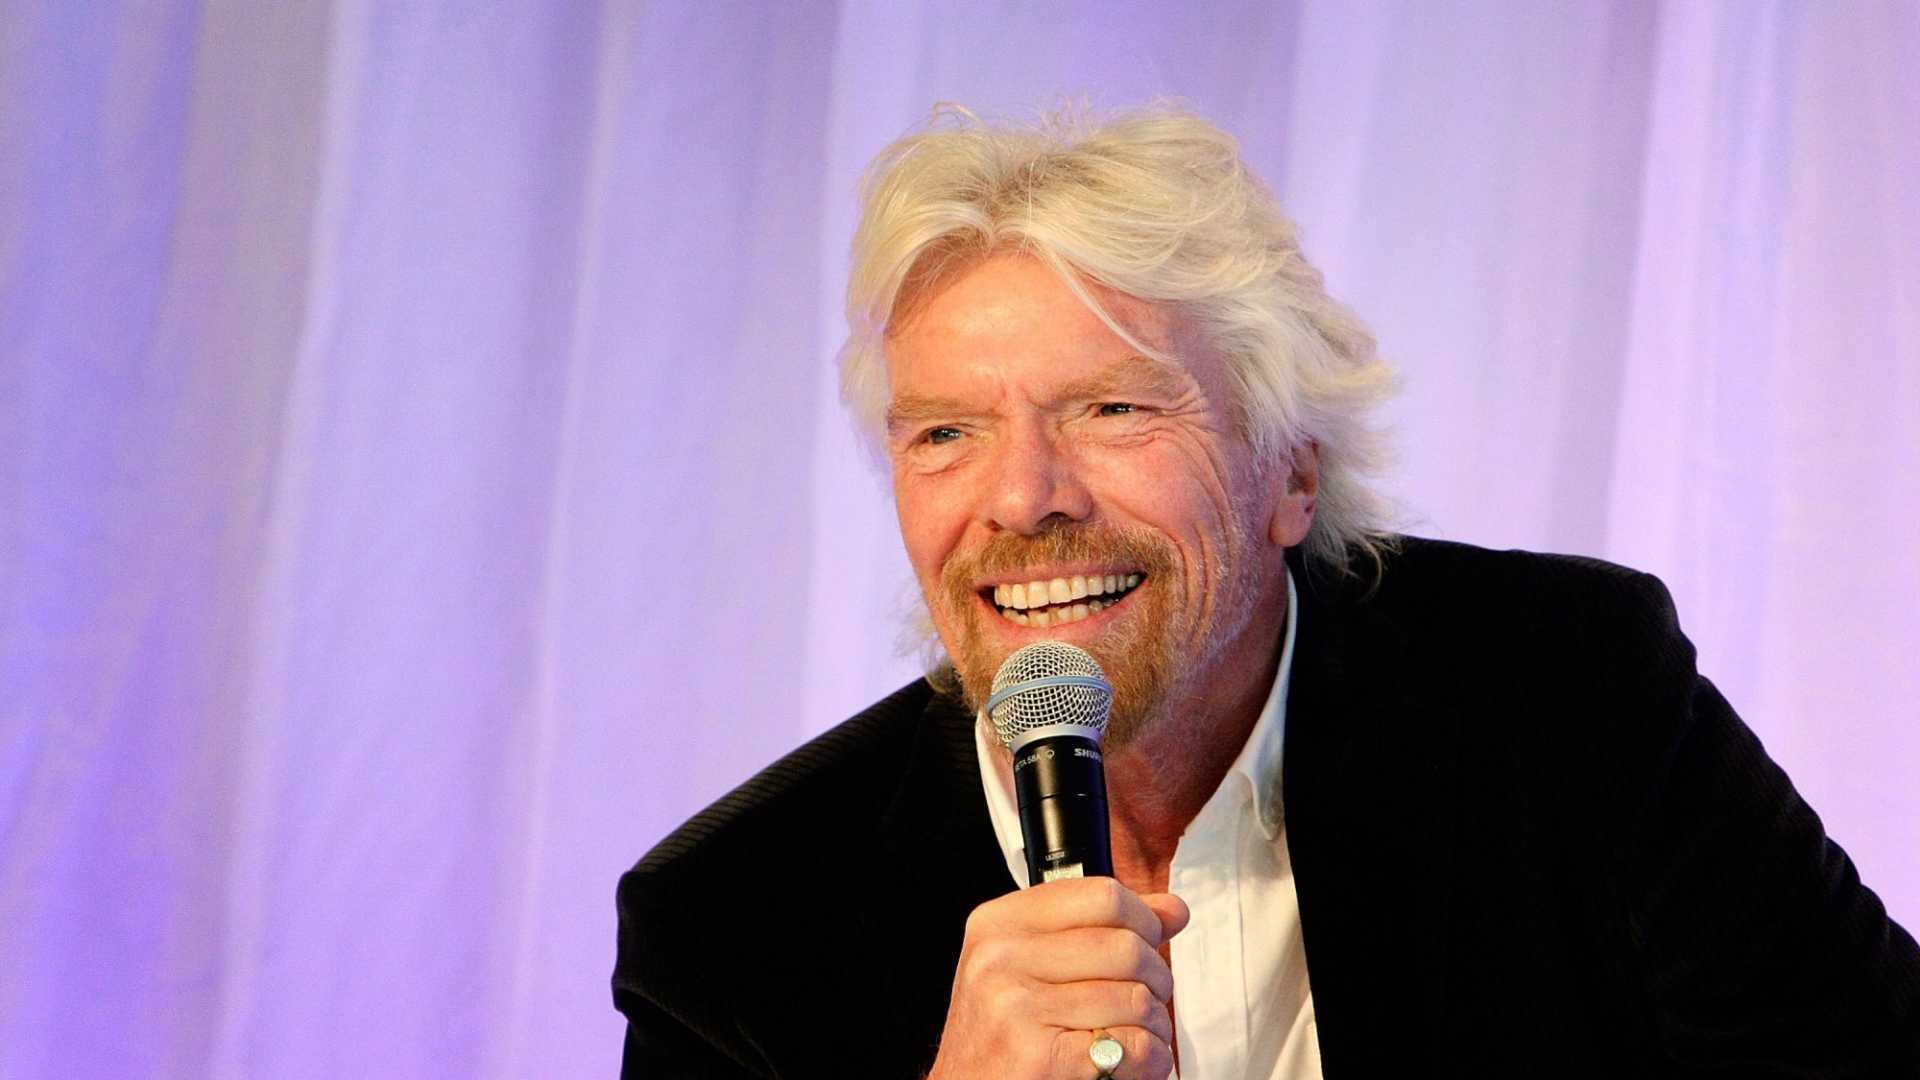 Richard Branson Wants You to Treat Your Employees Better -- and Save the World